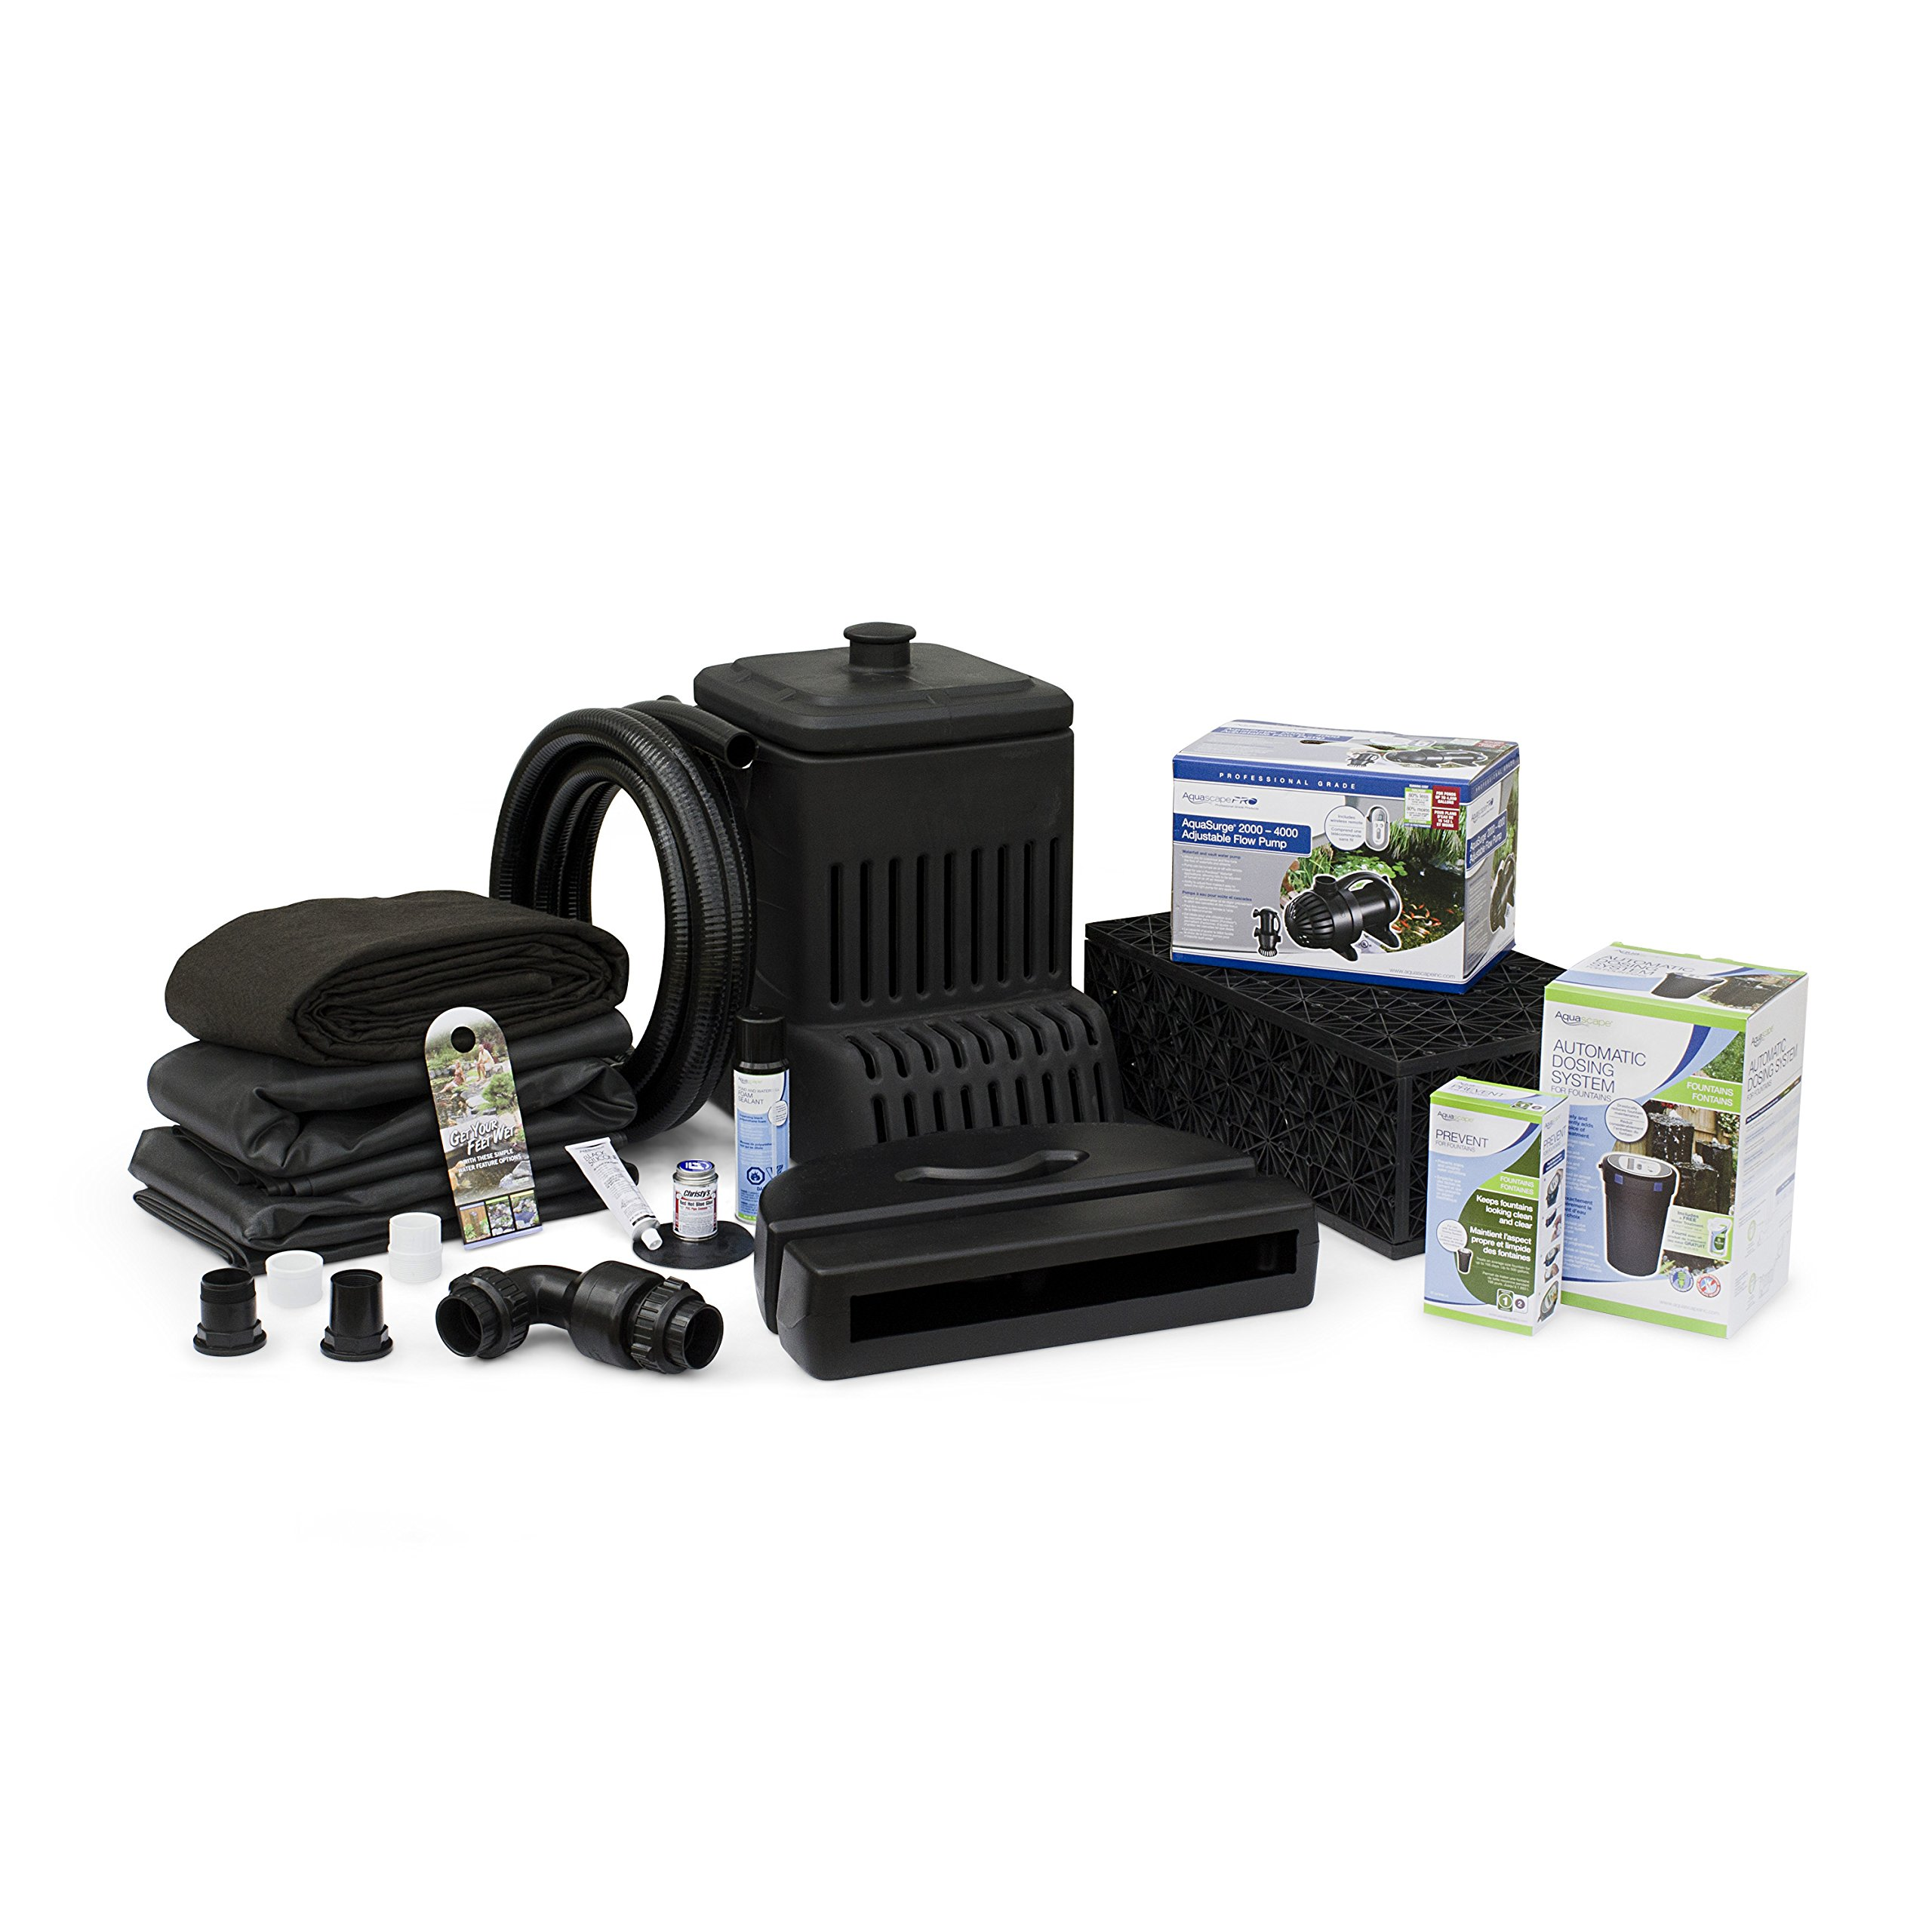 Aquascape Complete Waterfall Kit with 6 Feet Stream | AquaSurgePRO 2000-4000 Water Pump by Aquascape